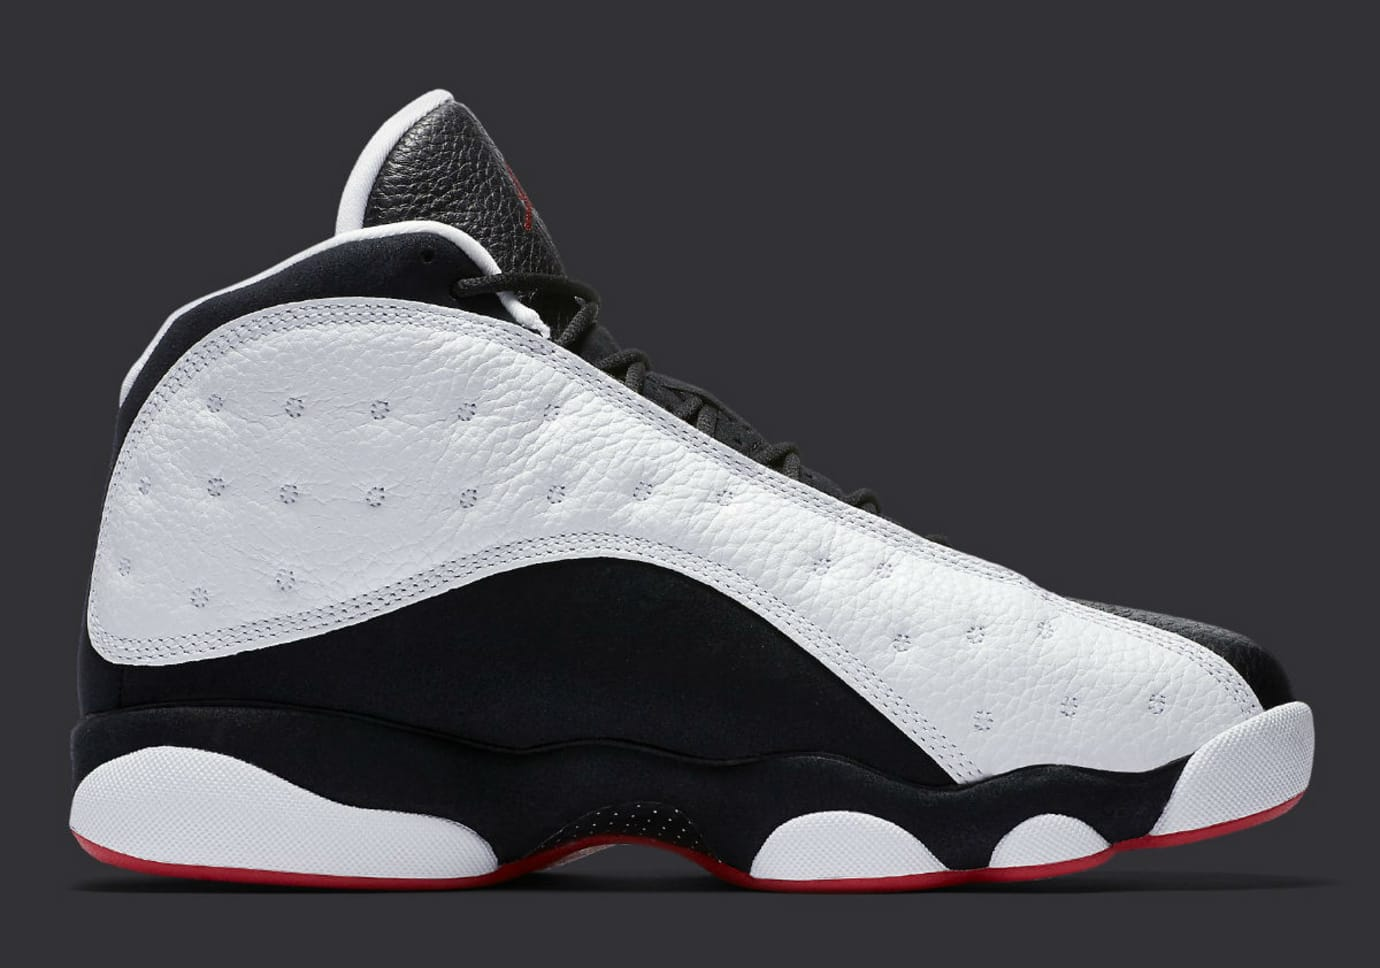 finest selection 10672 477fc Air Jordan 13 XIII He Got Game 2018 Release Date 414571-104 ...